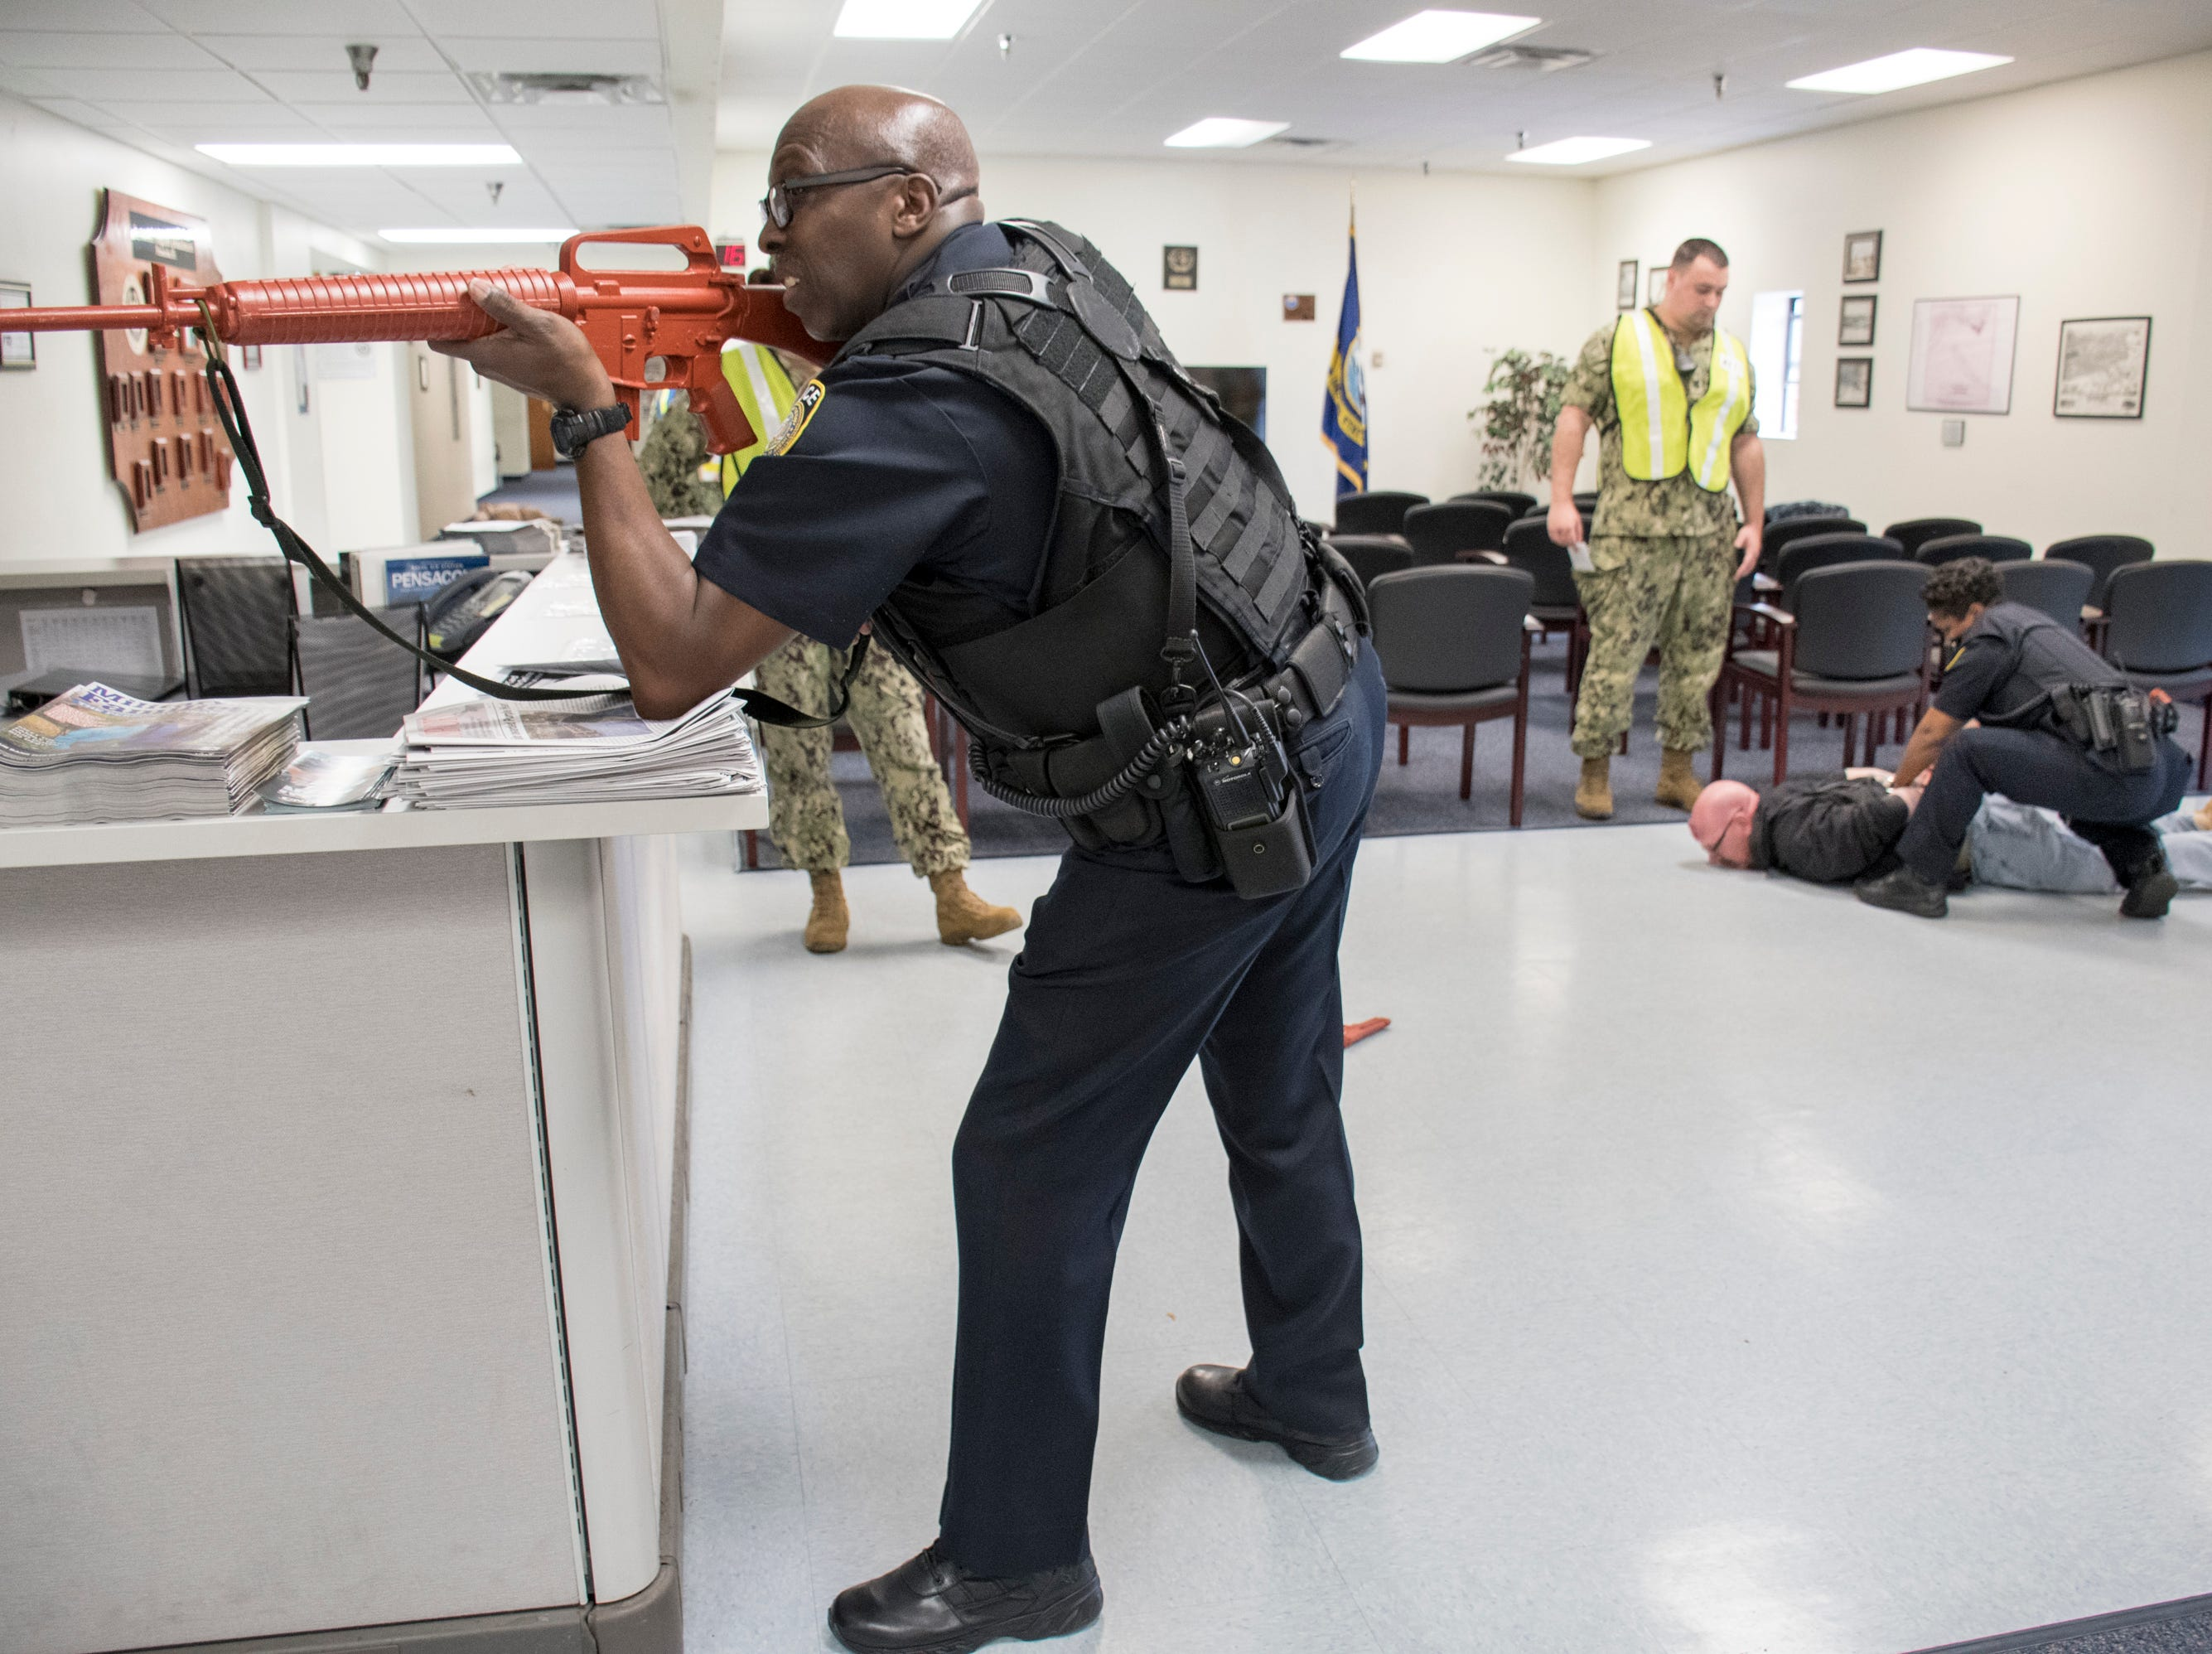 NAS Pensacola Police Officer Samuel Watkins, left, secures the room as his partner Sophia Barnes handcuffs Senior Chief Aviation Structural Mechanic Pasquale Moreland, who is portraying an armed intruder, in the Personnel Support Detachment building during Exercise Solid Curtain-Citadel Shield, an annual security exercise is conducted at NAS Pensacola on Tuesday, February 4, 2019.